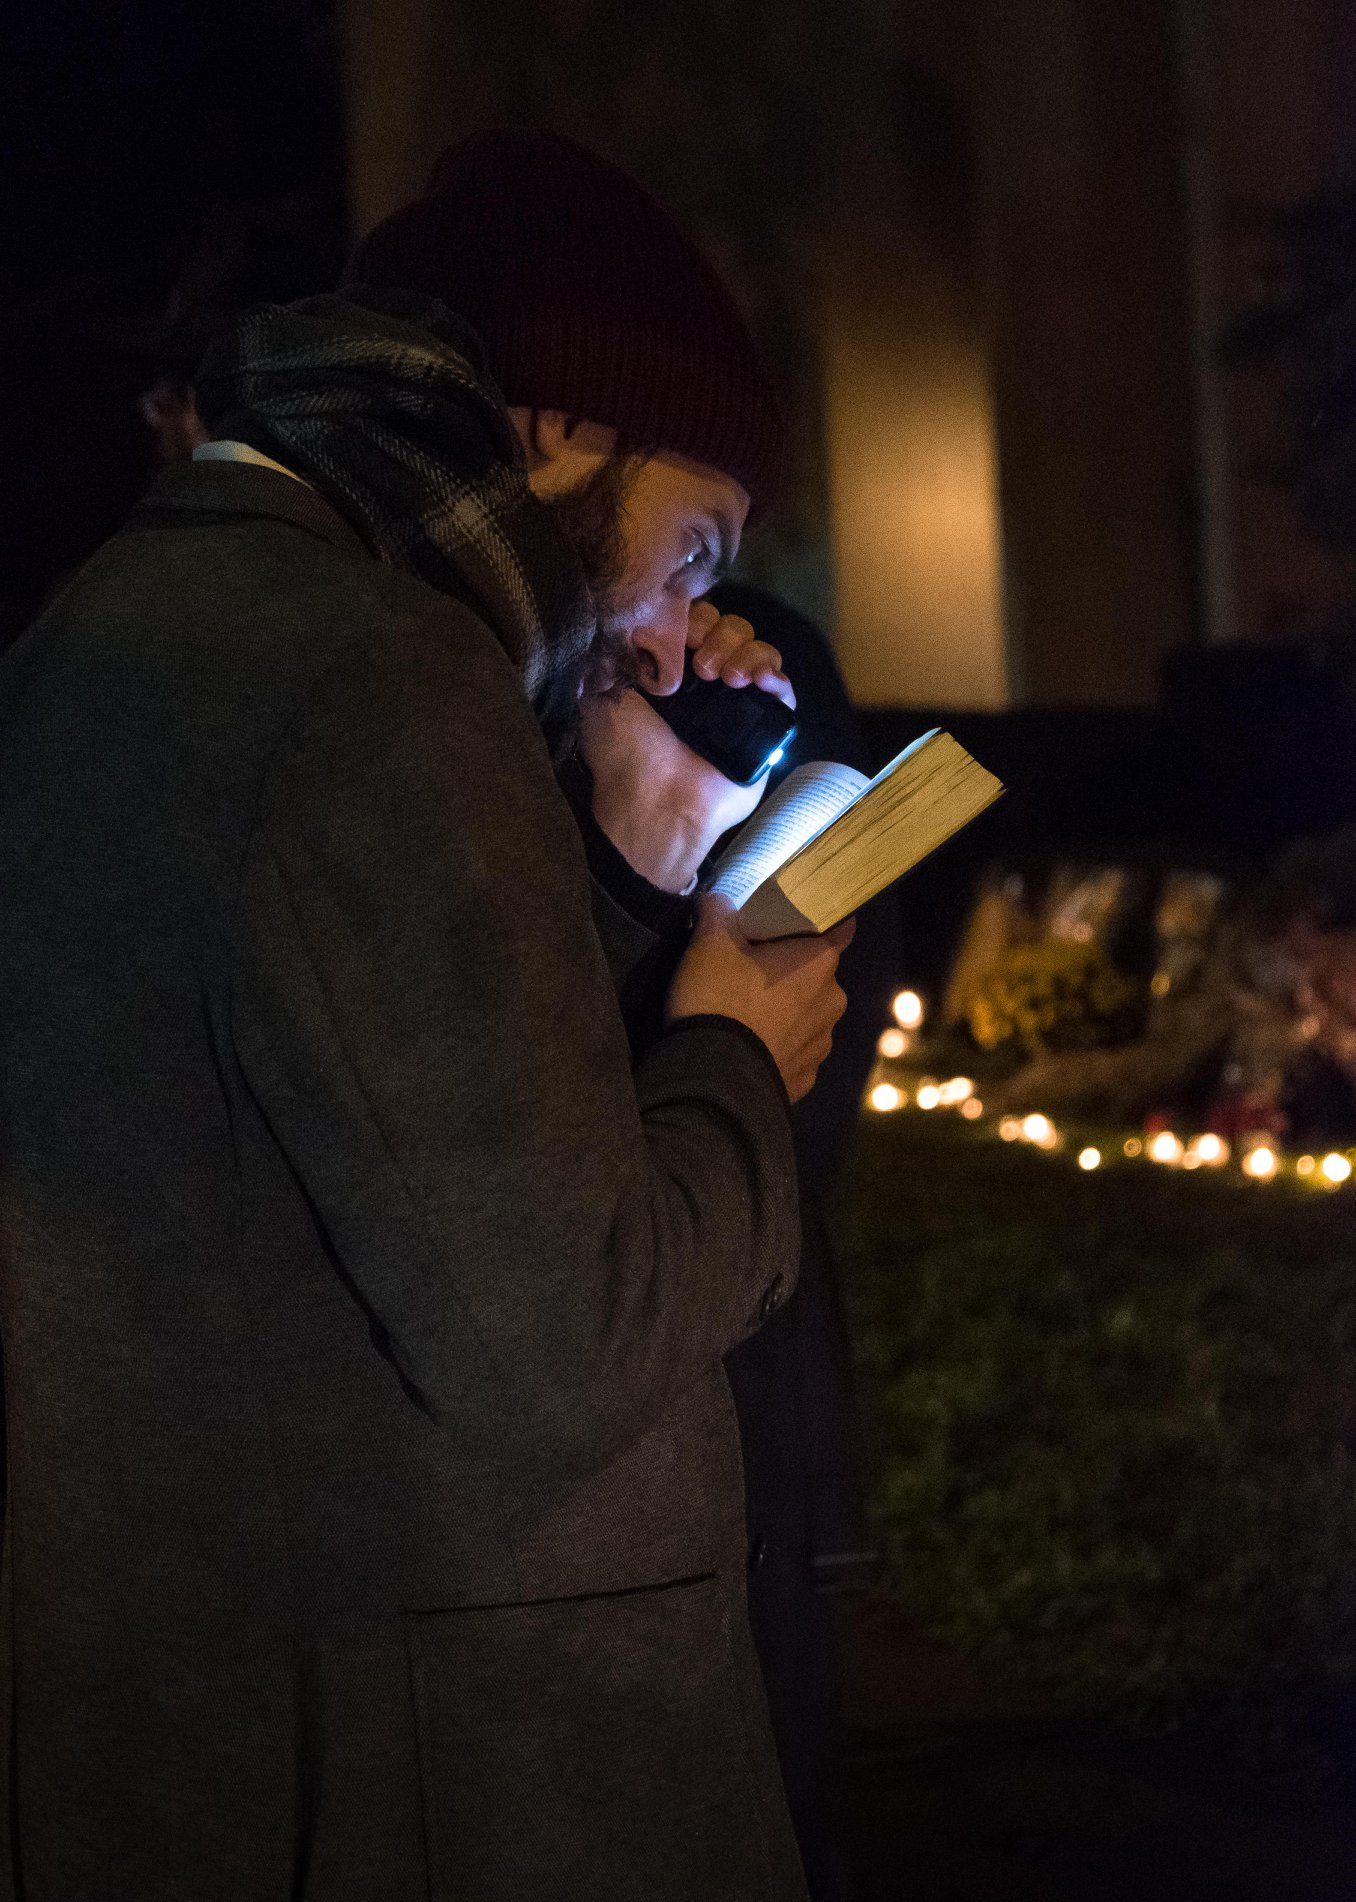 A man chants verses from the Torah in front of a shrine of lit candles on Shady Avenue outside the Tree of Life synagogue.